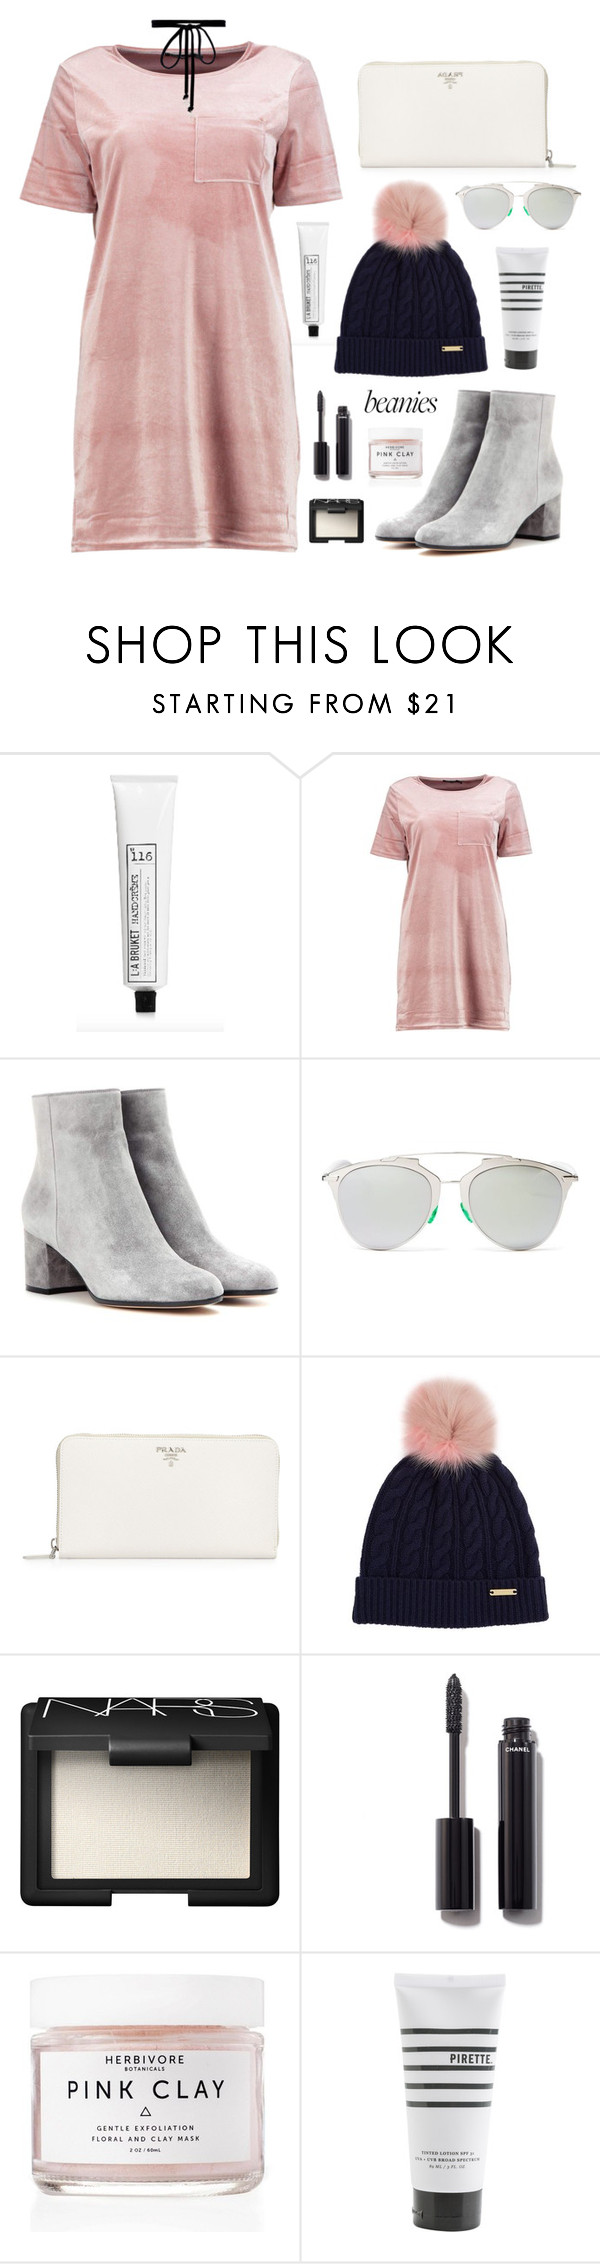 """Hey Baby"" by cyberqueenn on Polyvore featuring L:A Bruket, Boohoo, Gianvito Rossi, Christian Dior, Prada, Burberry, NARS Cosmetics, Chanel, Herbivore and Pirette"